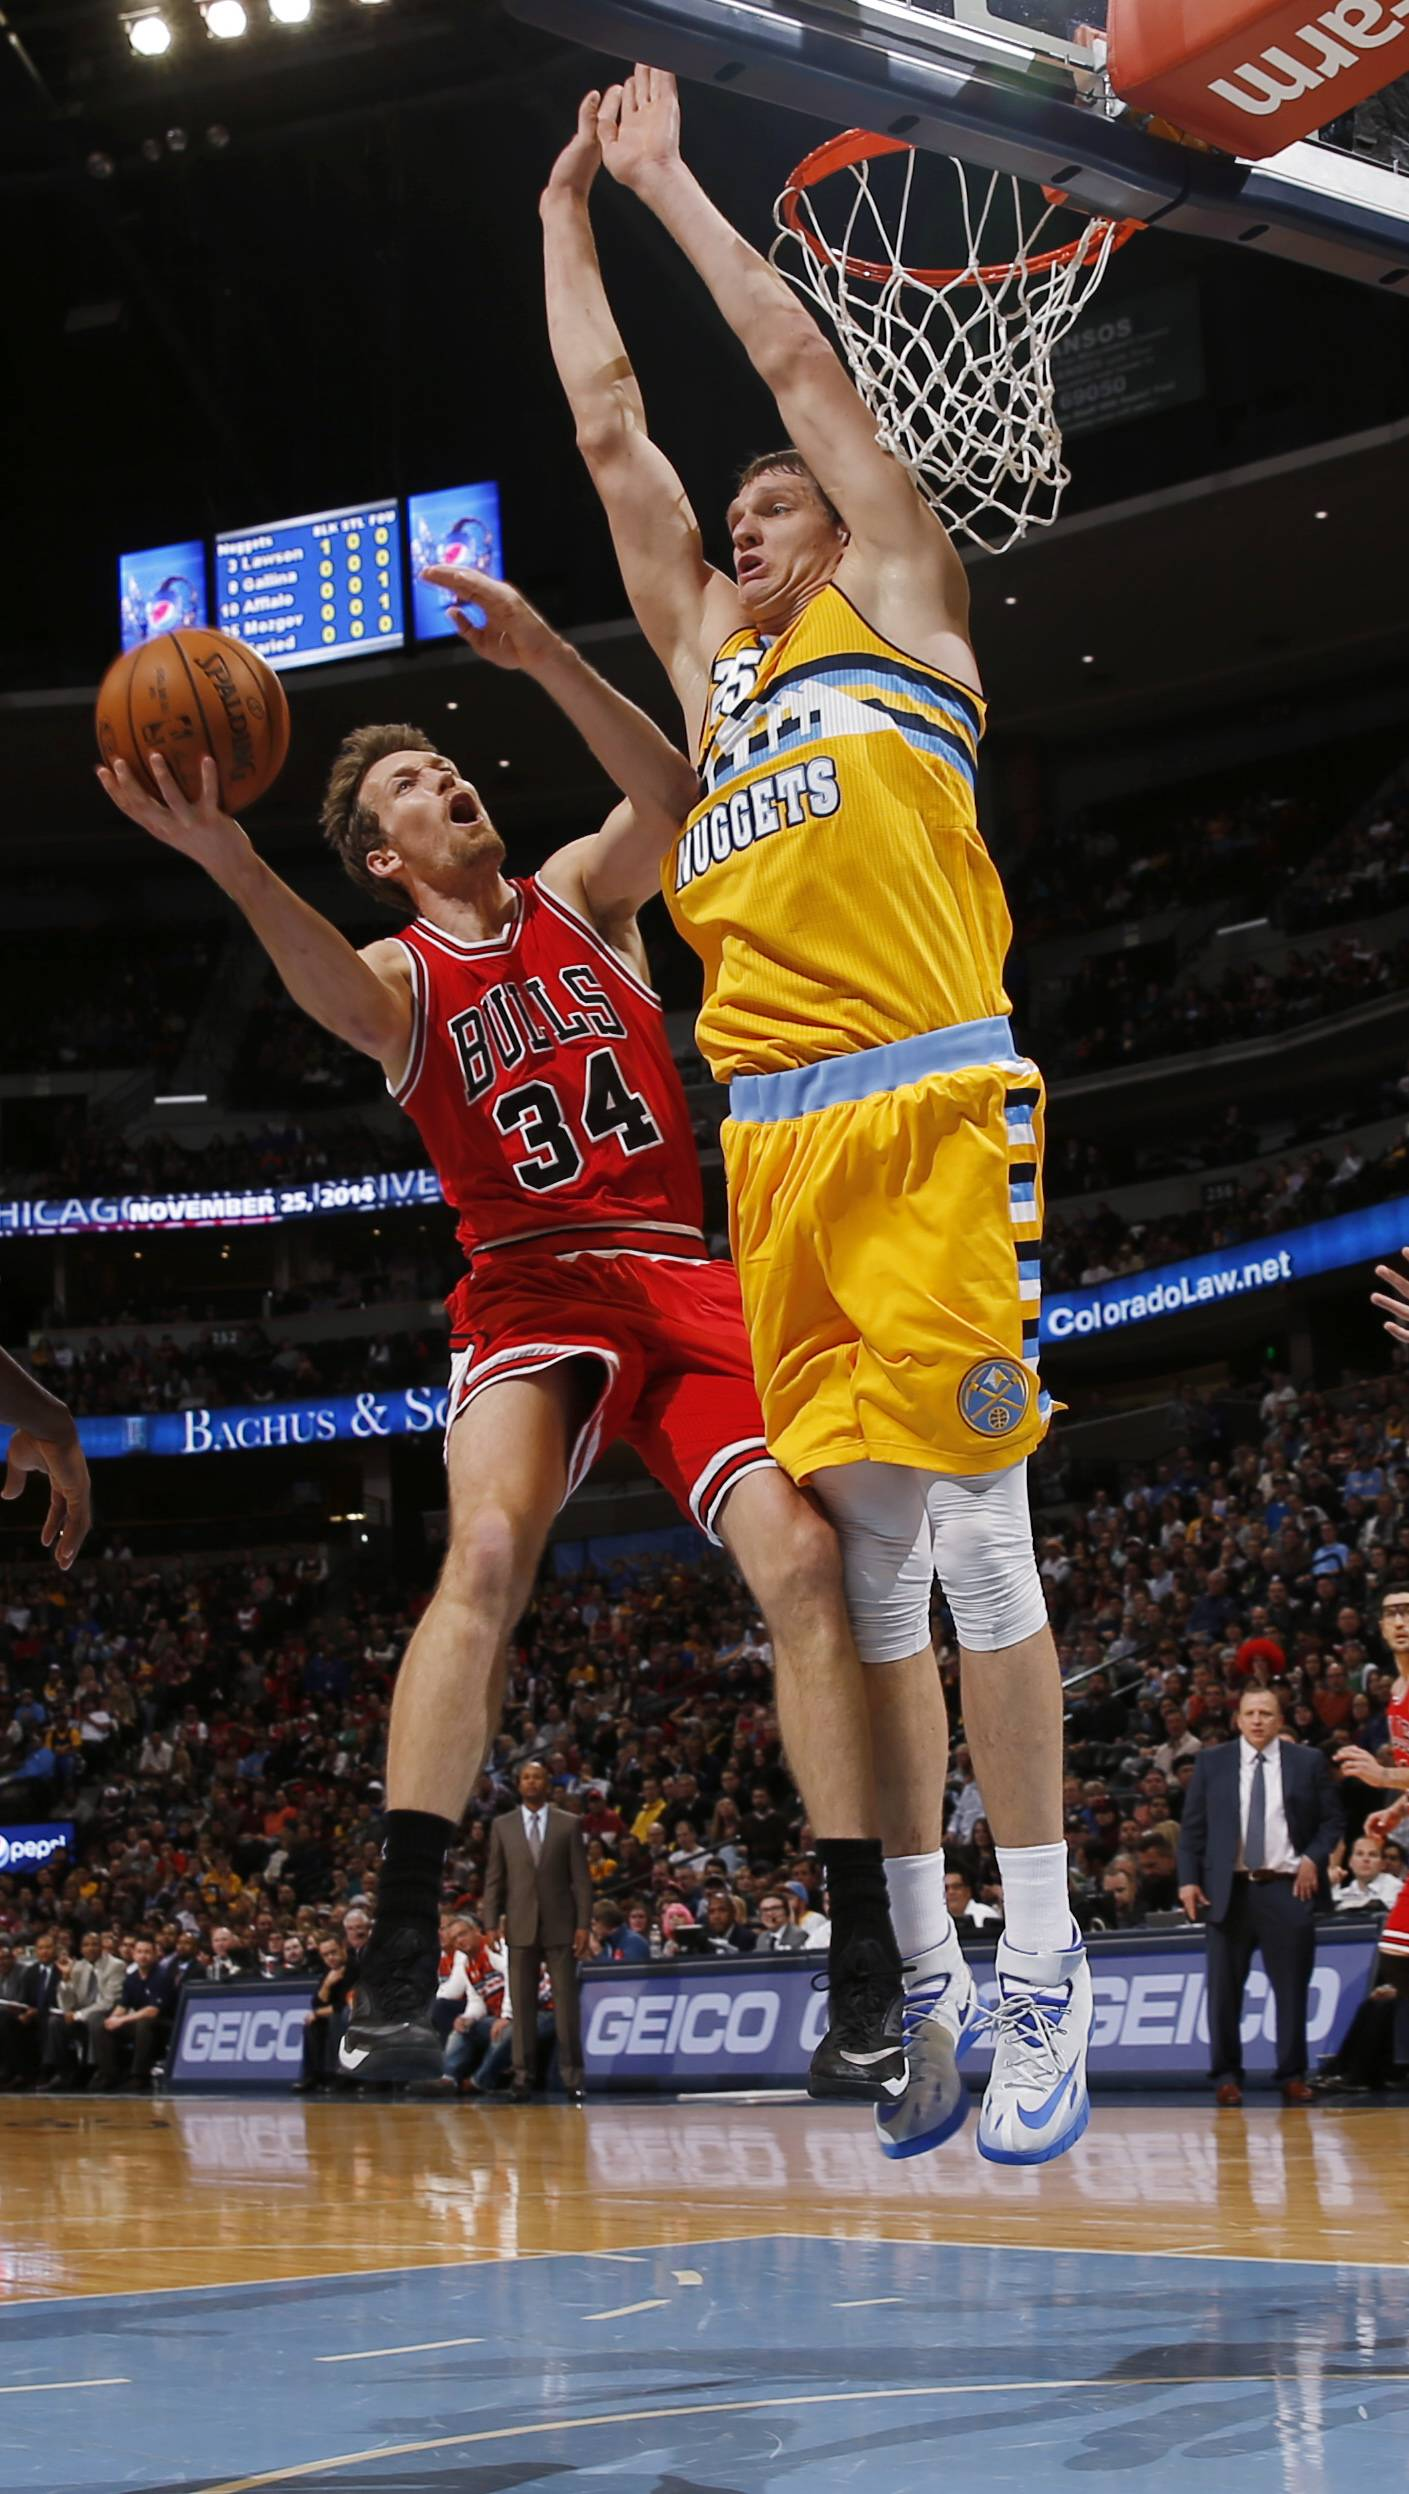 Bulls forward Mike Dunleavy drives the lane for shot as Nuggets center Timofey Mozgov defends Tuesday night at Denver.